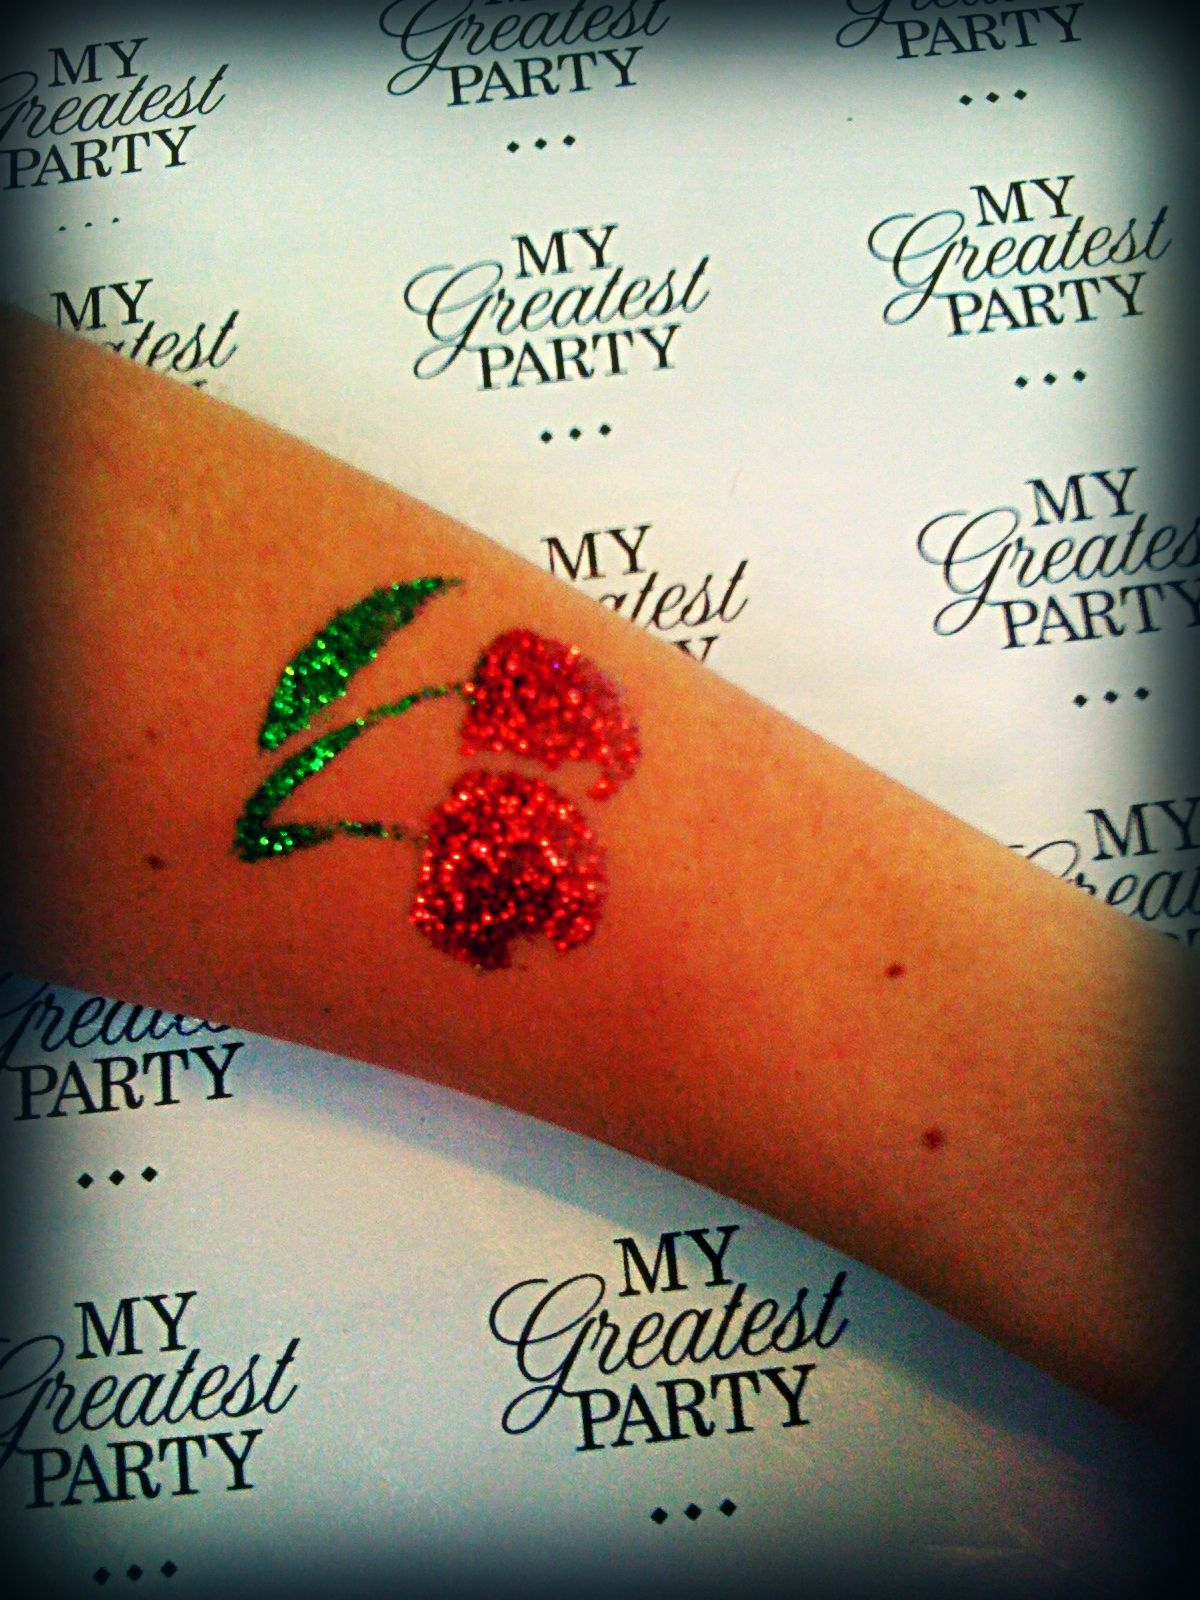 Cherry tattoo, glitter and glamour!   My Greatest Party